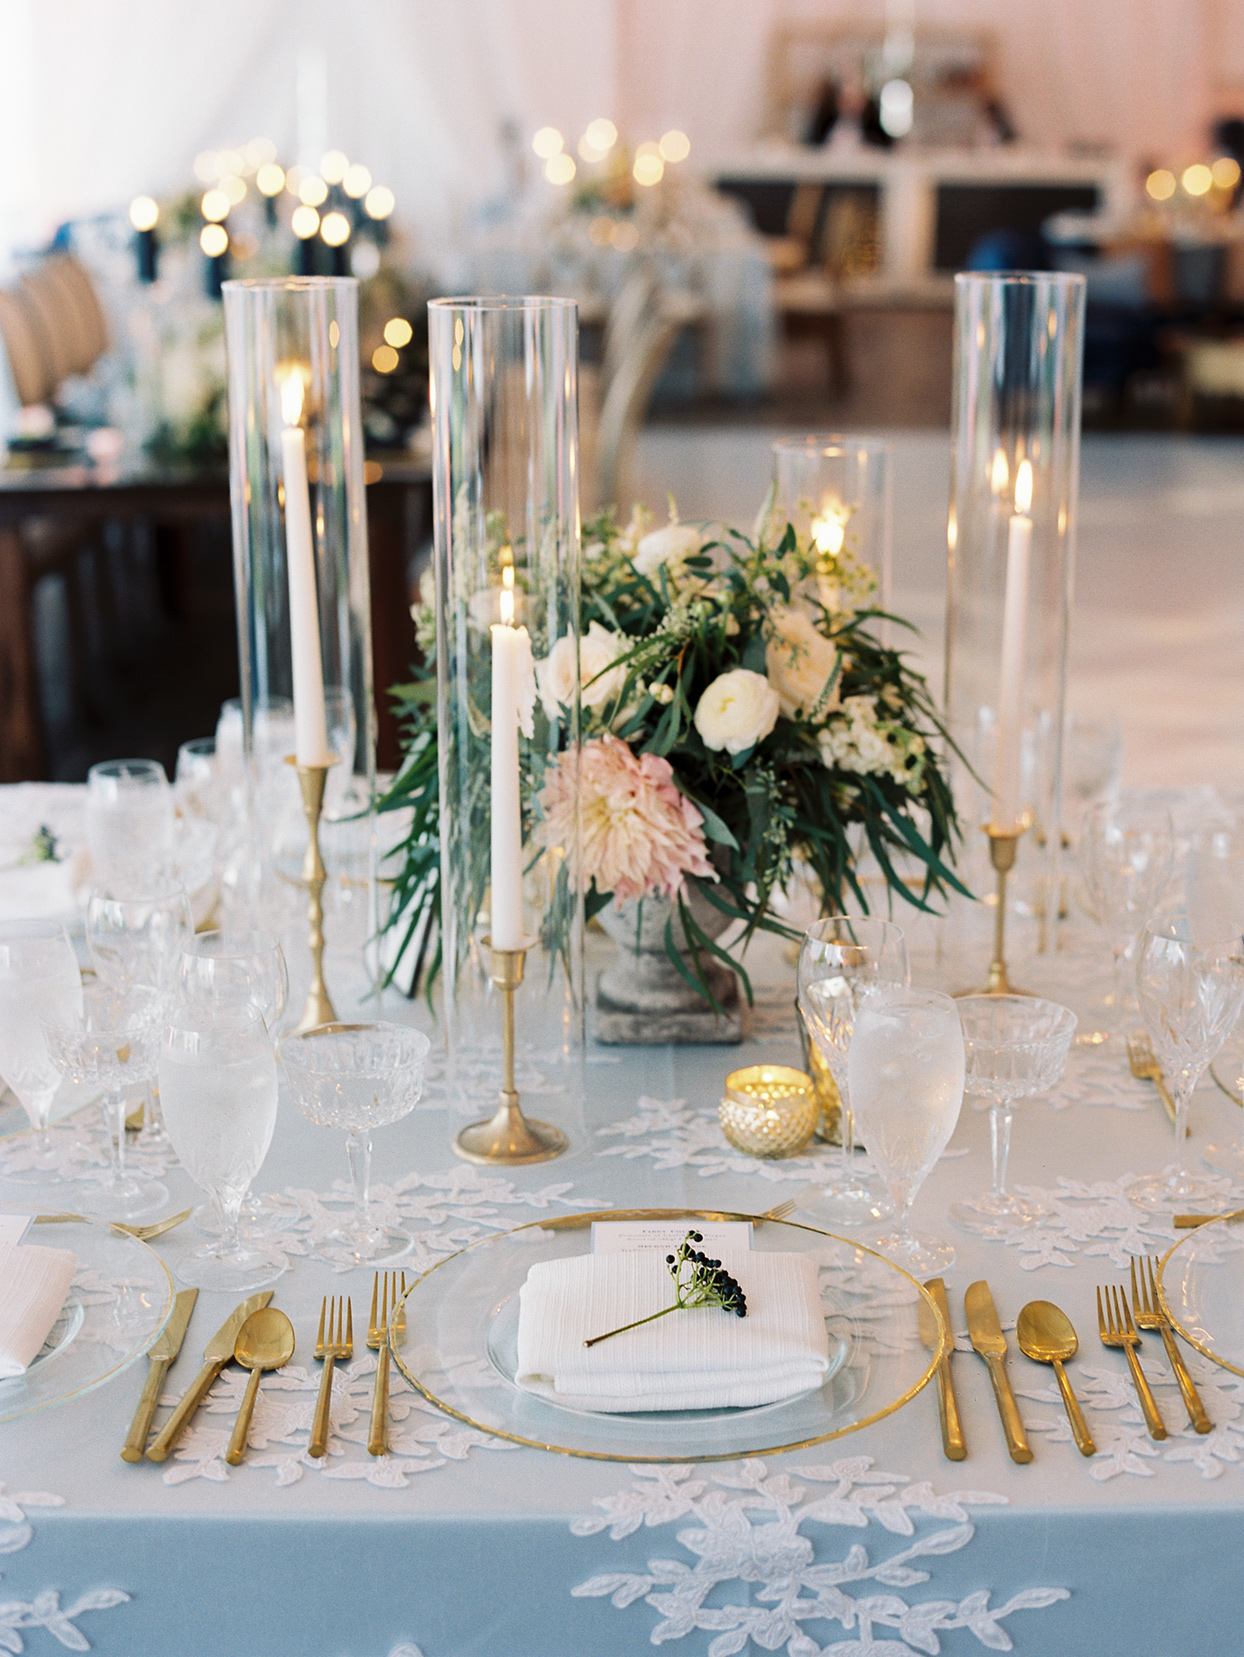 lauren chris wedding table with lace overlay